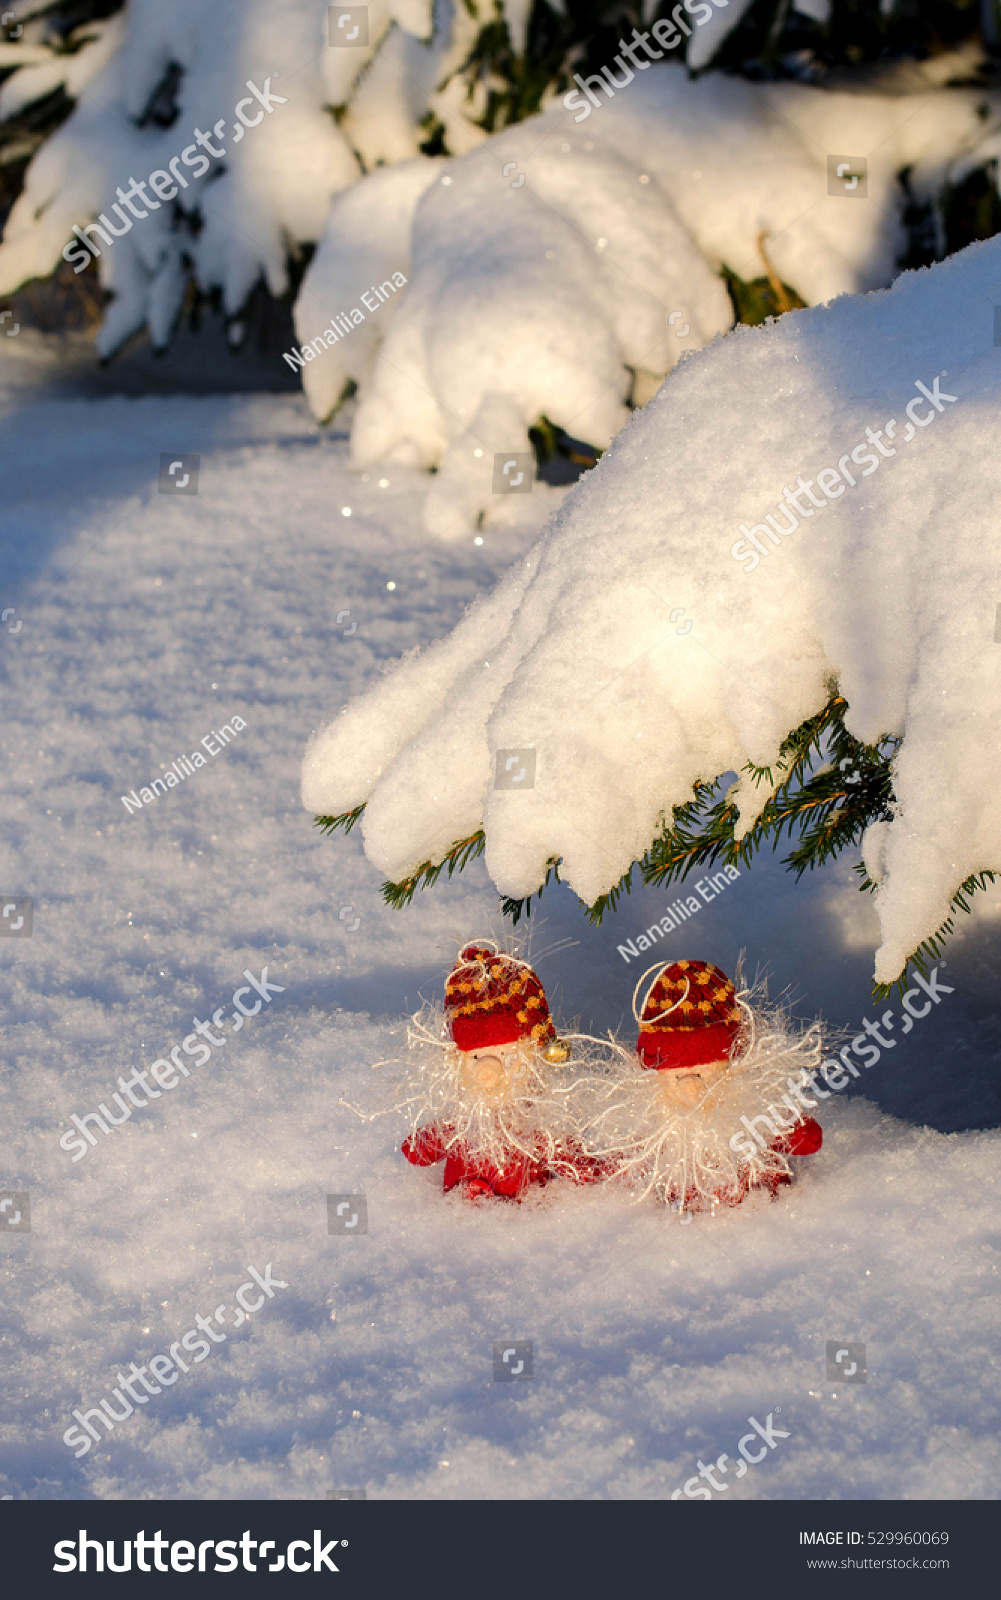 Two Small Decorative Gnome Pine Branches Stock Photo Edit Now 529960069